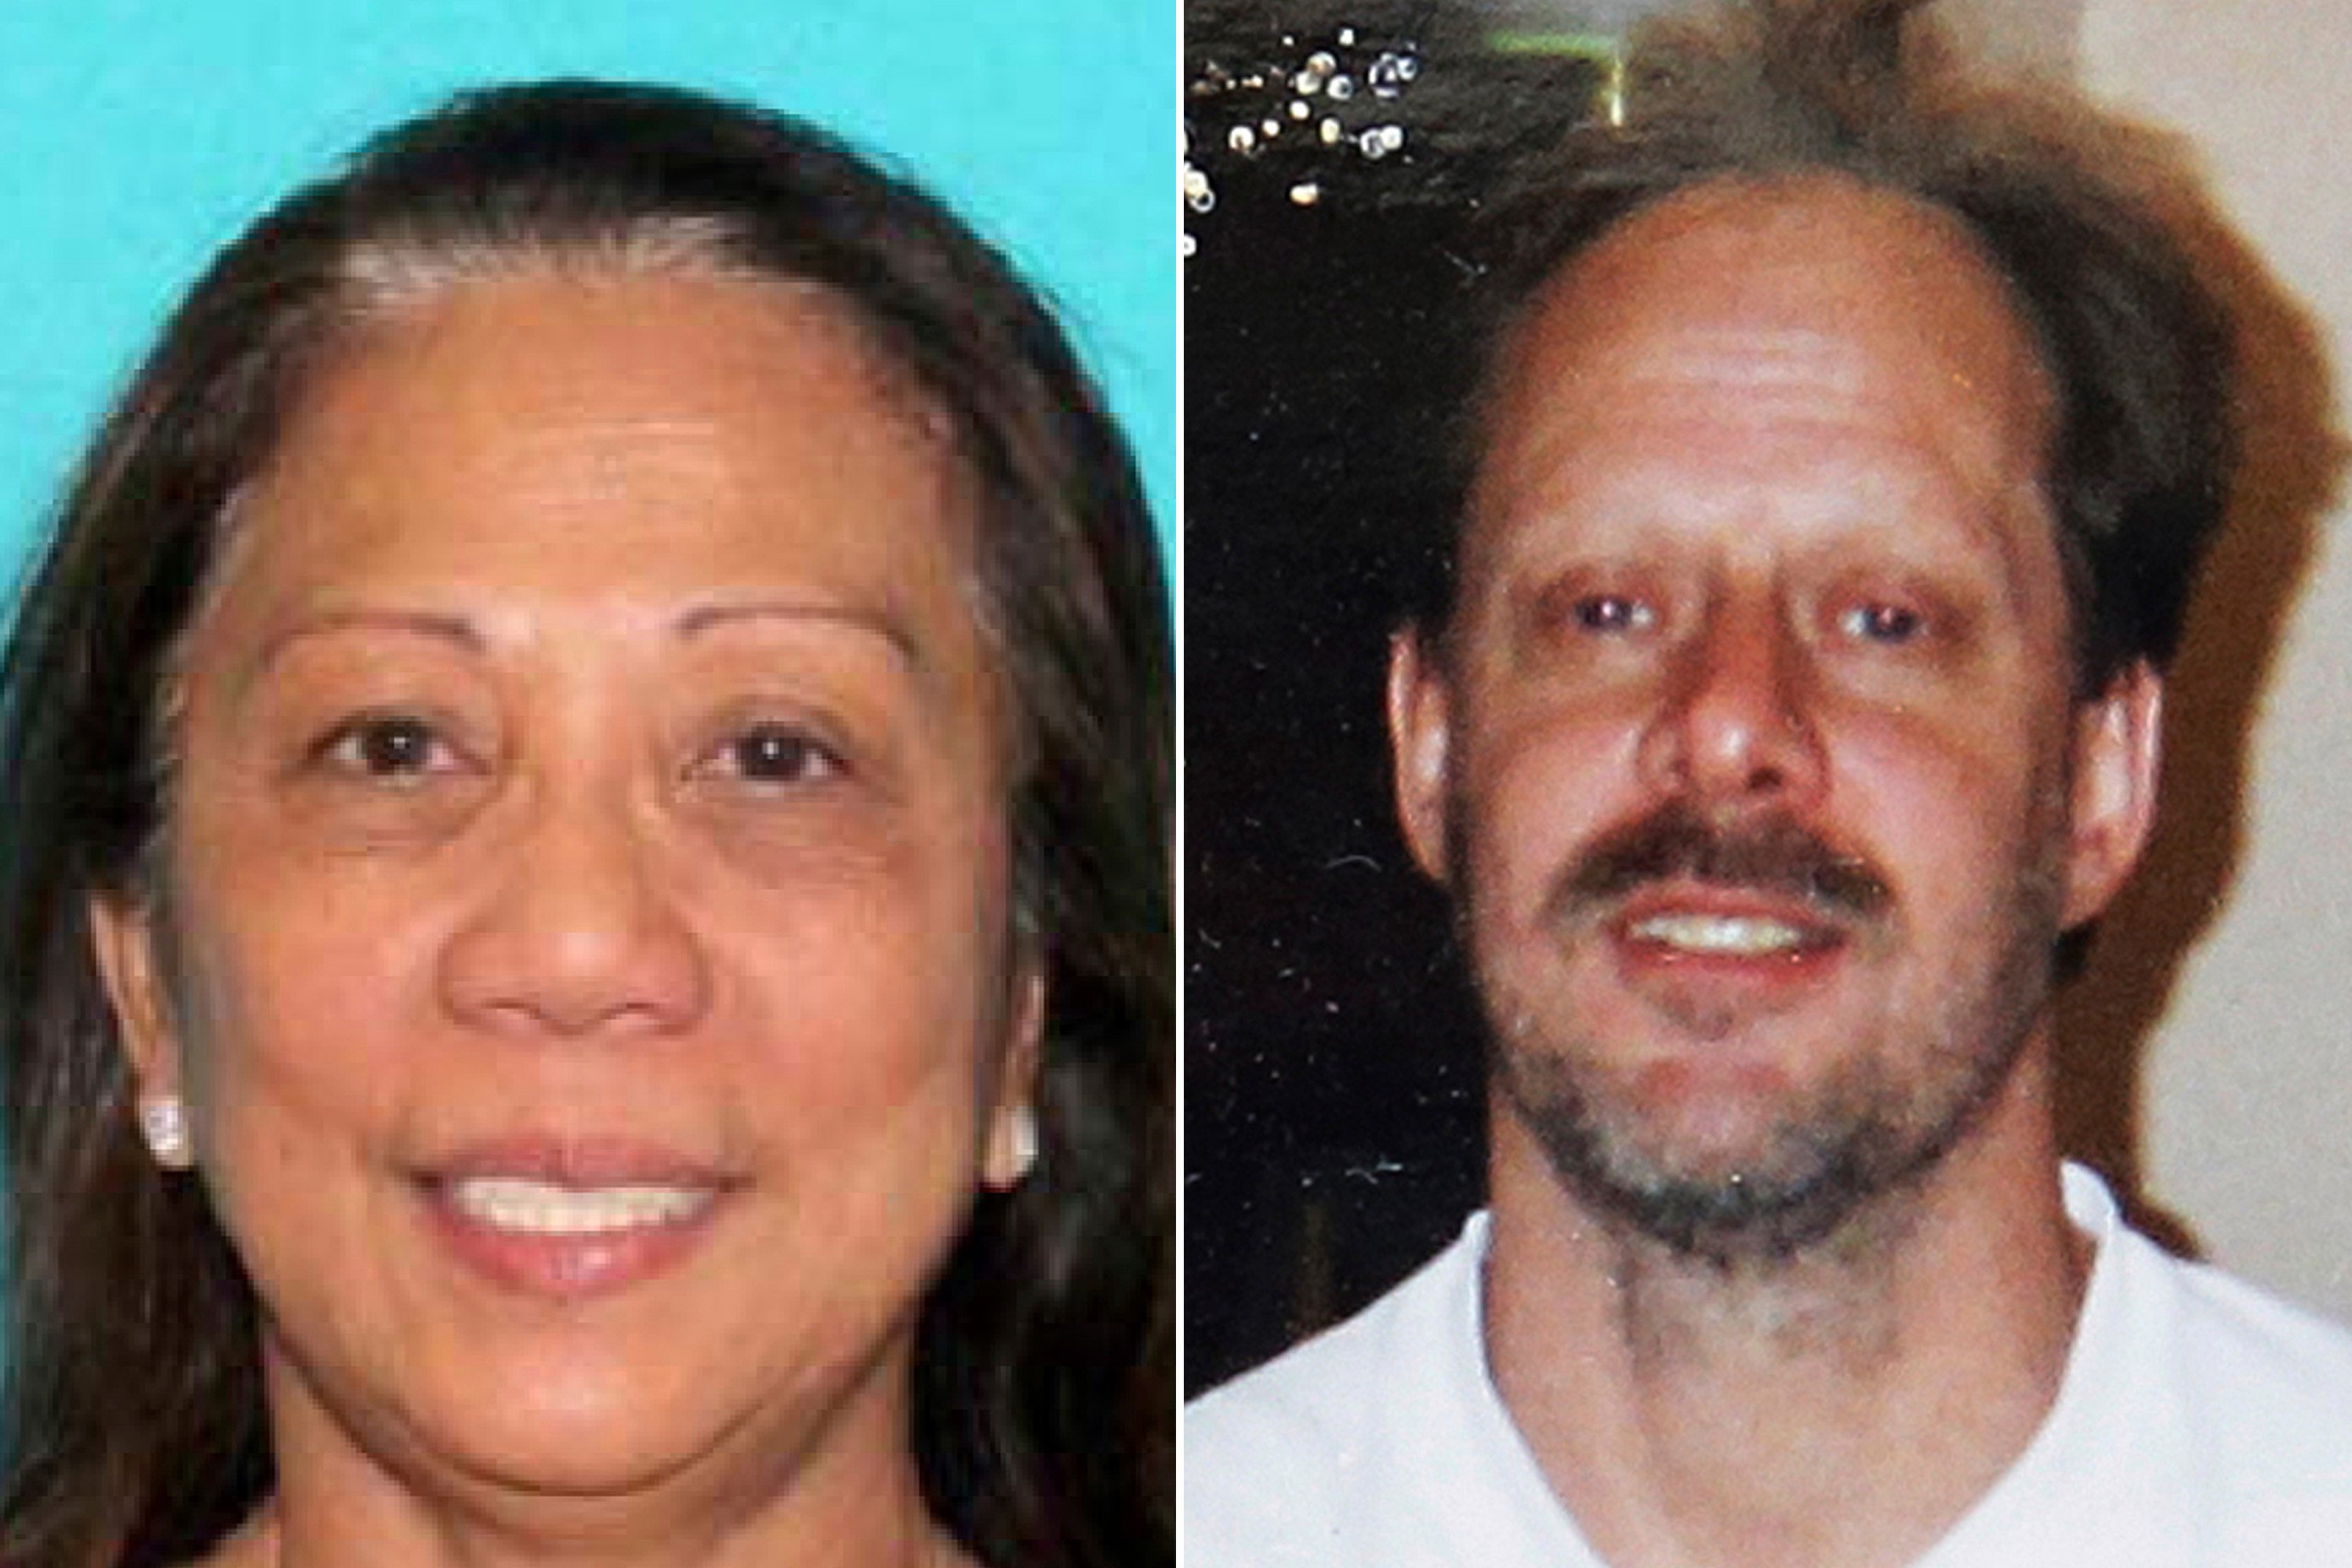 Vegas shooter's girlfriend may have known something was up